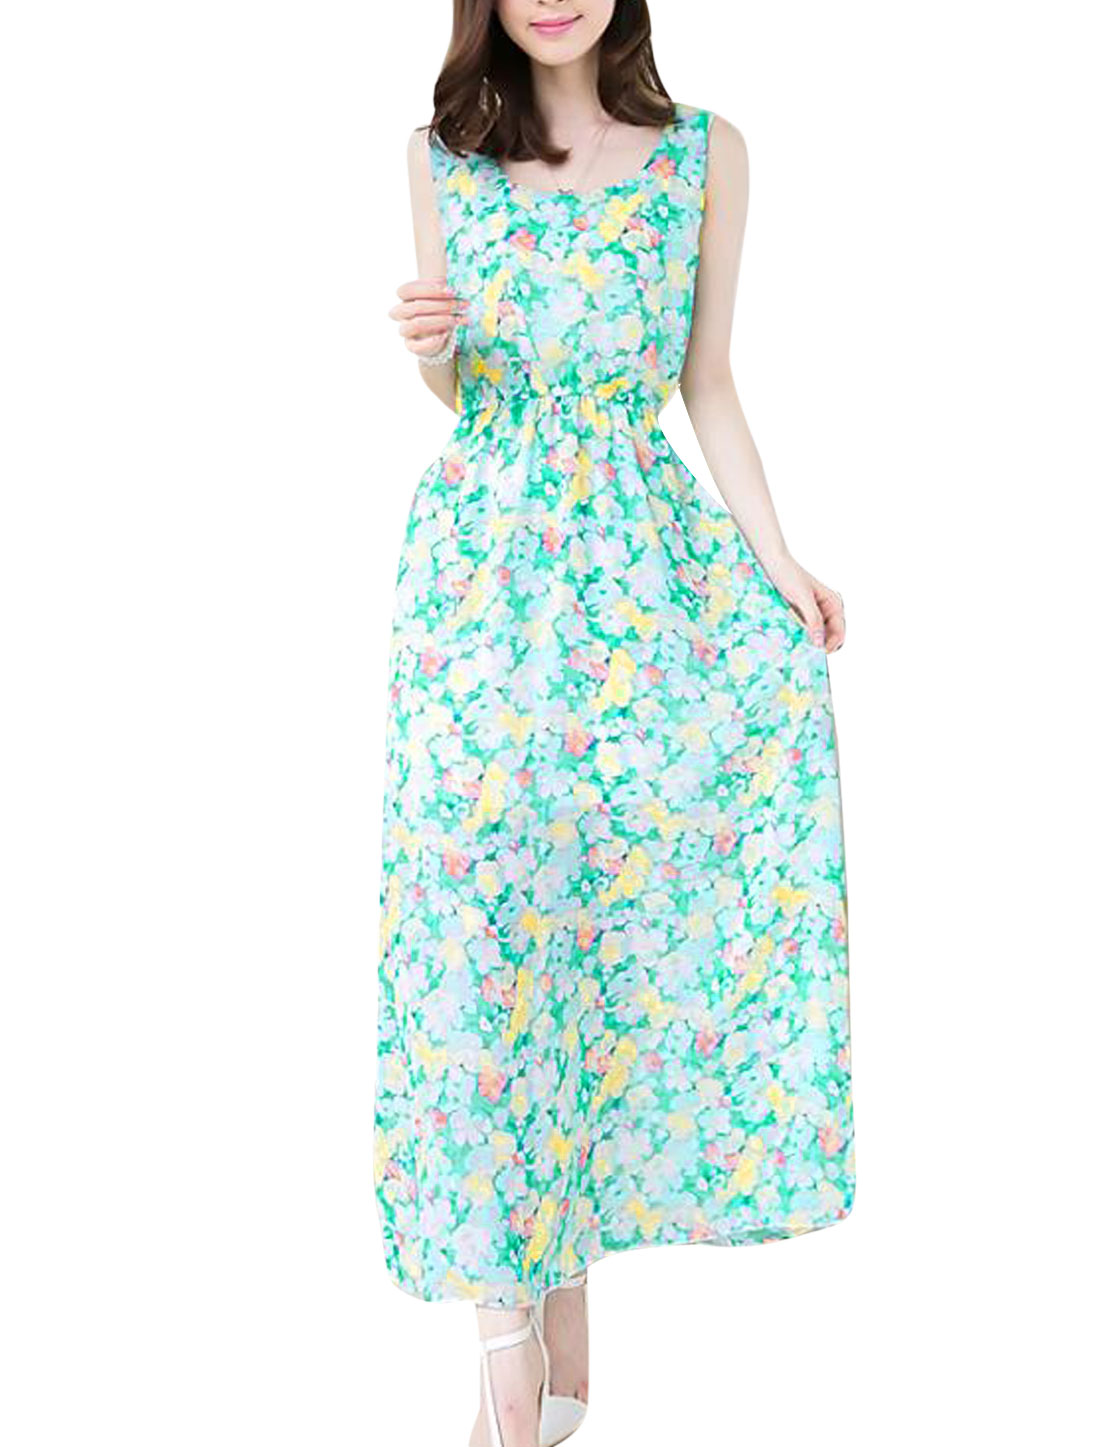 Lady Floral Prints Elastic Waist Lining Chiffon Blouson Dress Light Green XS